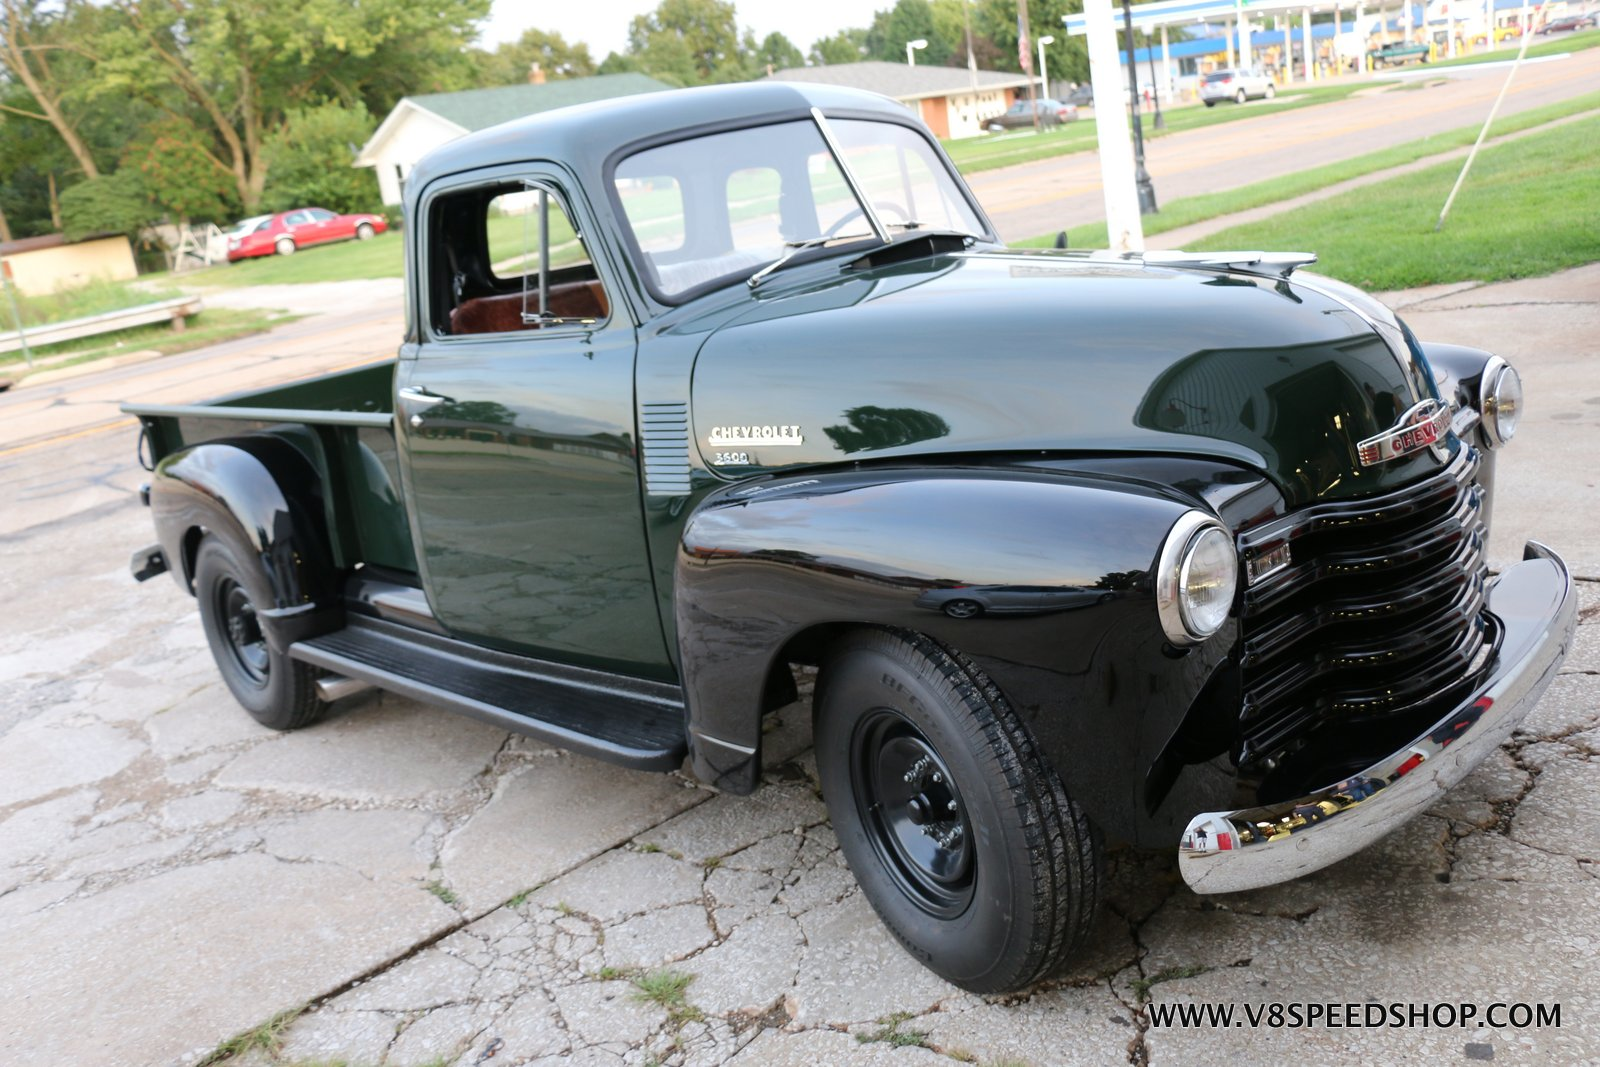 1951 Chevrolet Dump Pickup Truck Restoration Photo Gallery V8tv Click To Enlarge Image Chevy Pu Gh 2018 08 290003